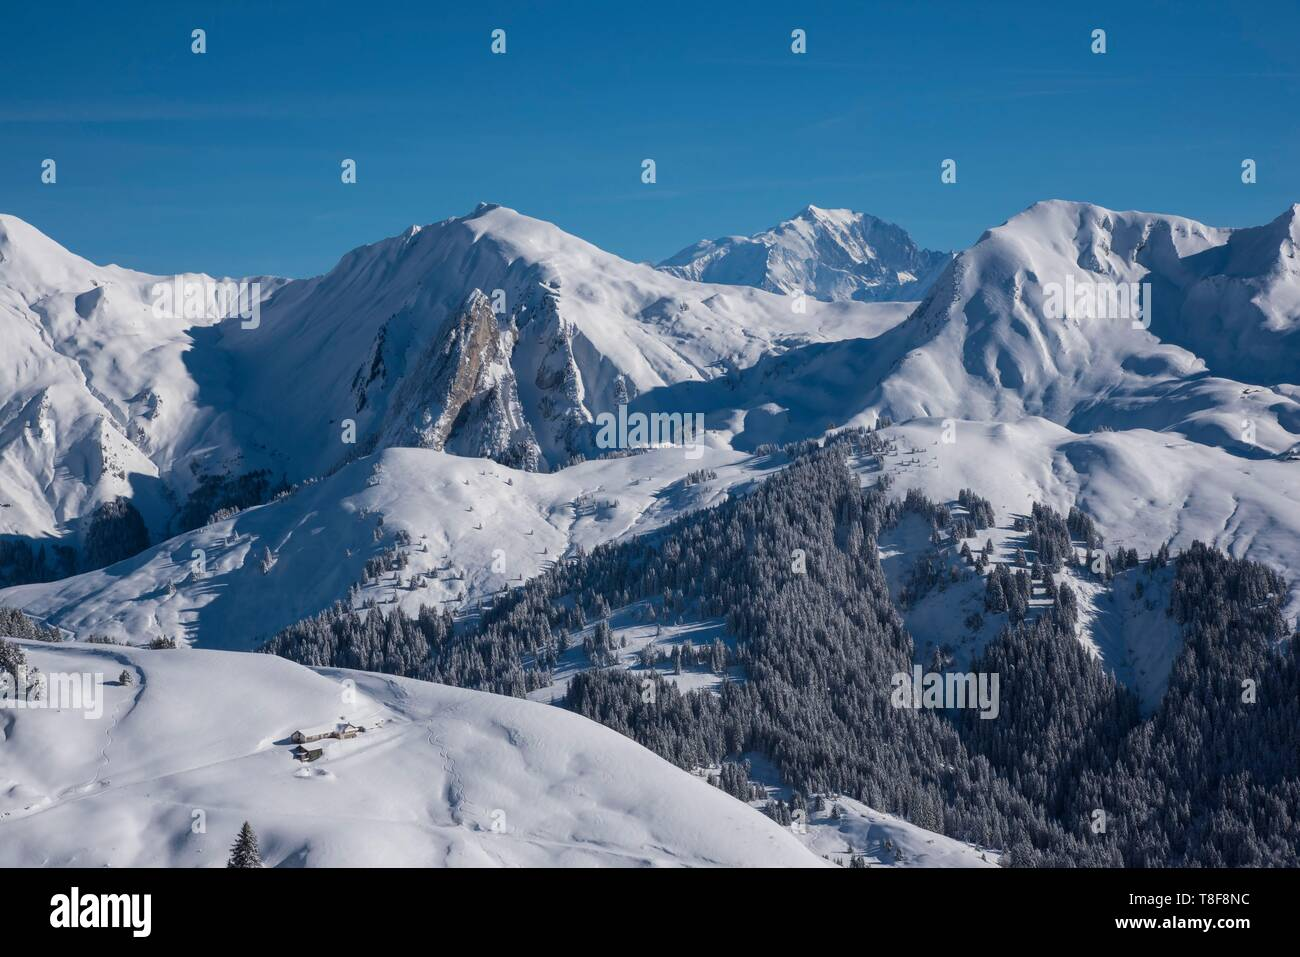 France, Haute Savoie, Aravis massif, Manigod, hiking at Mont